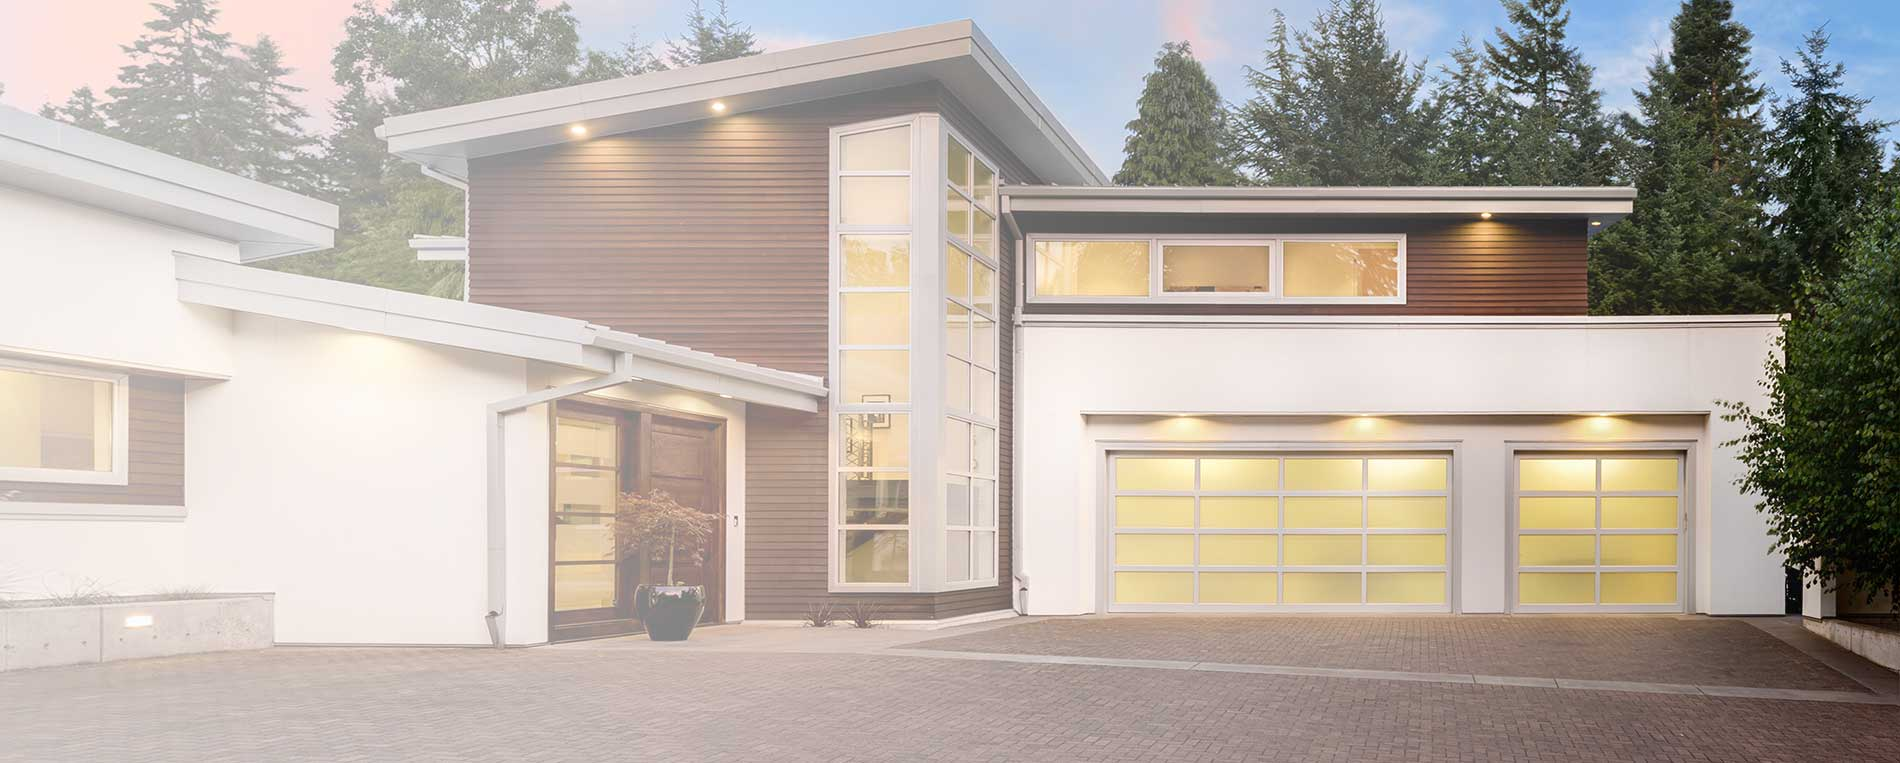 Garage Door Repair Leesburg, FL